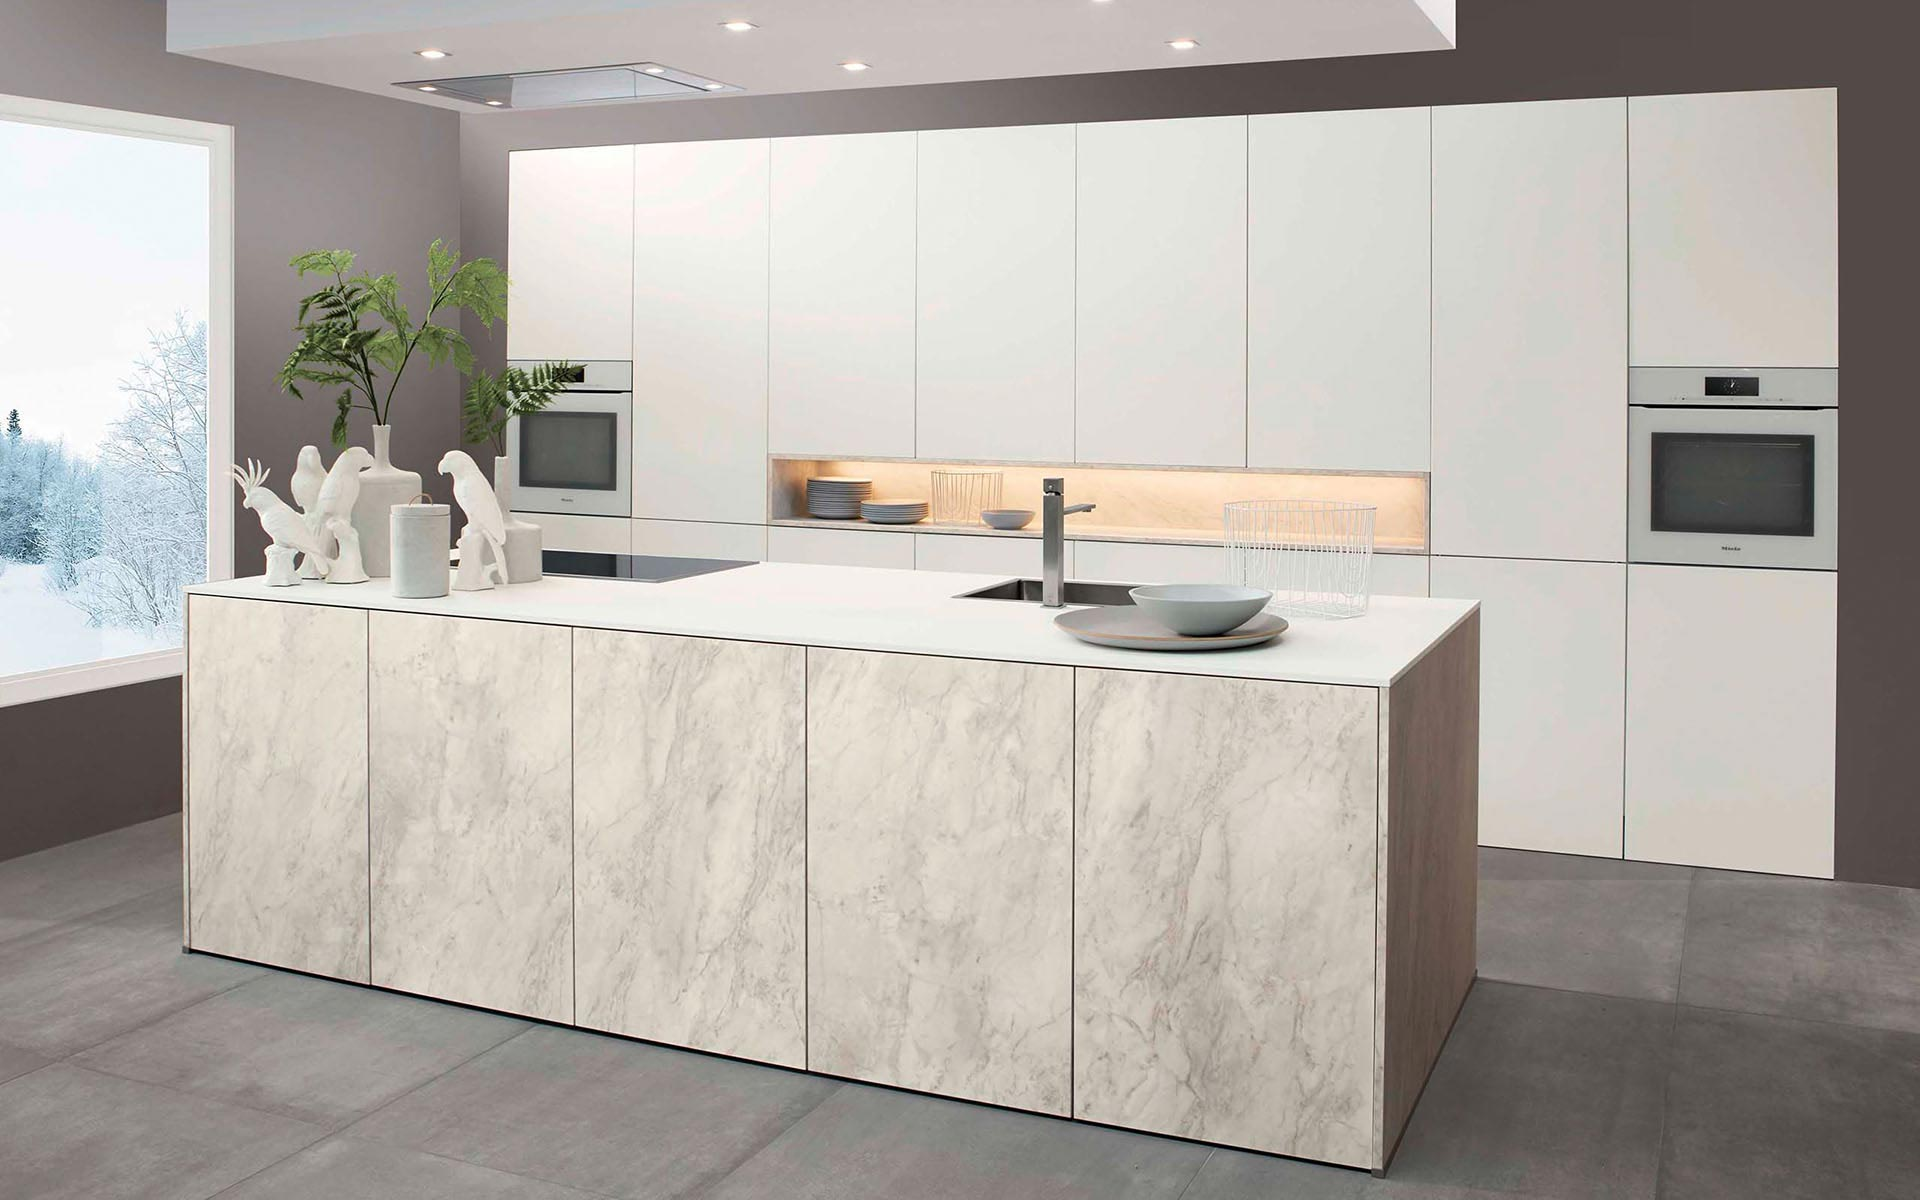 Toronto: Kitchens from Germany, Europe. Marble Marmor Bianco • Extrem Snow